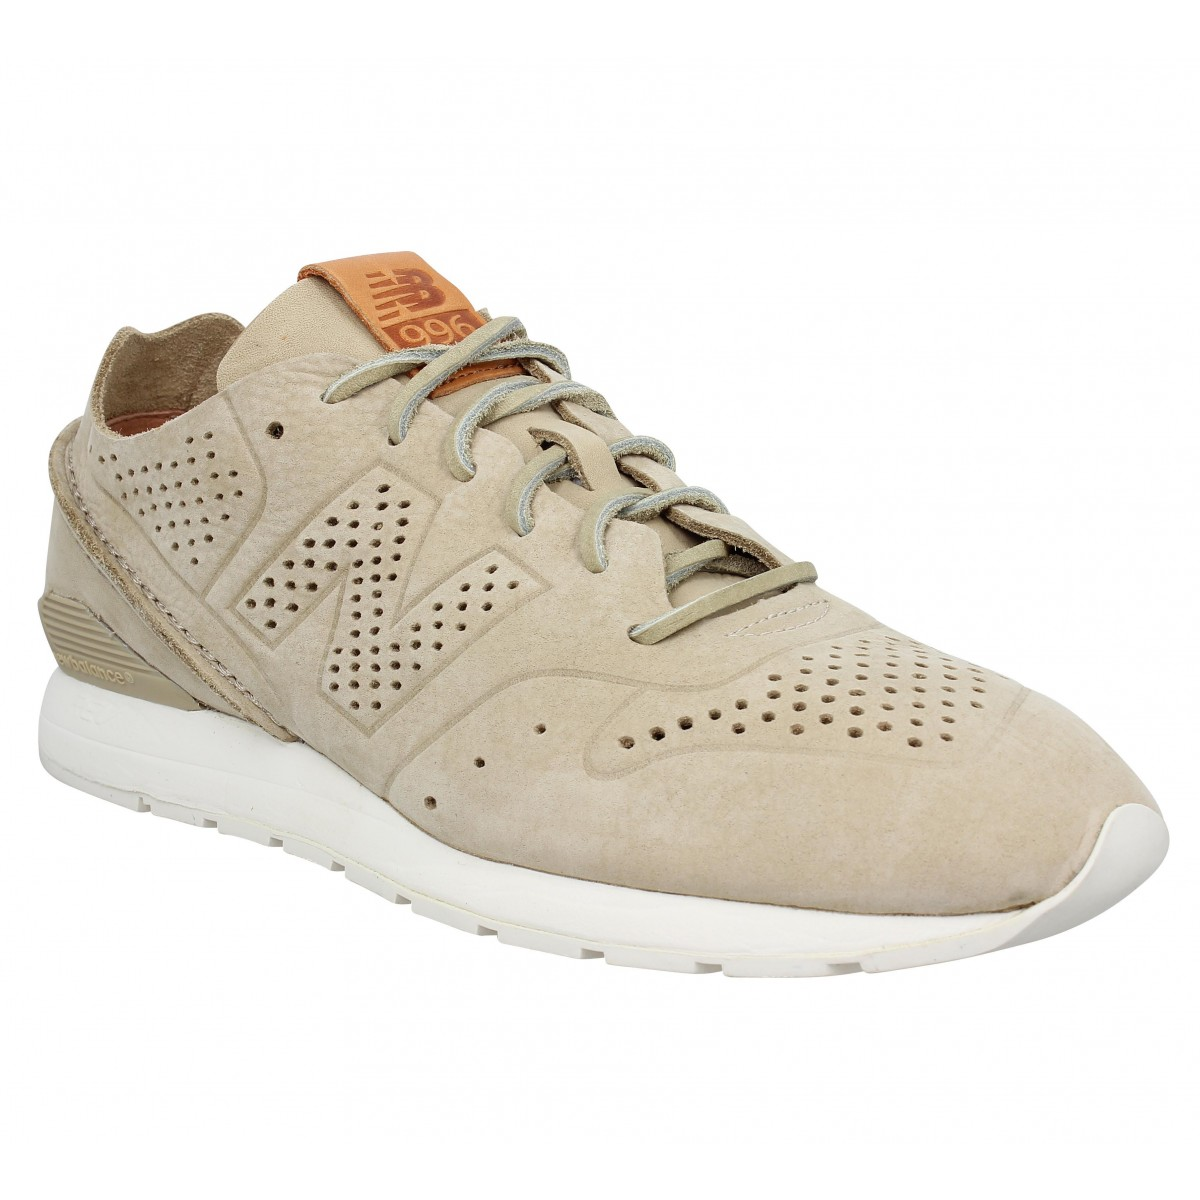 Baskets NEW BALANCE MRL 996 nubuck Beige